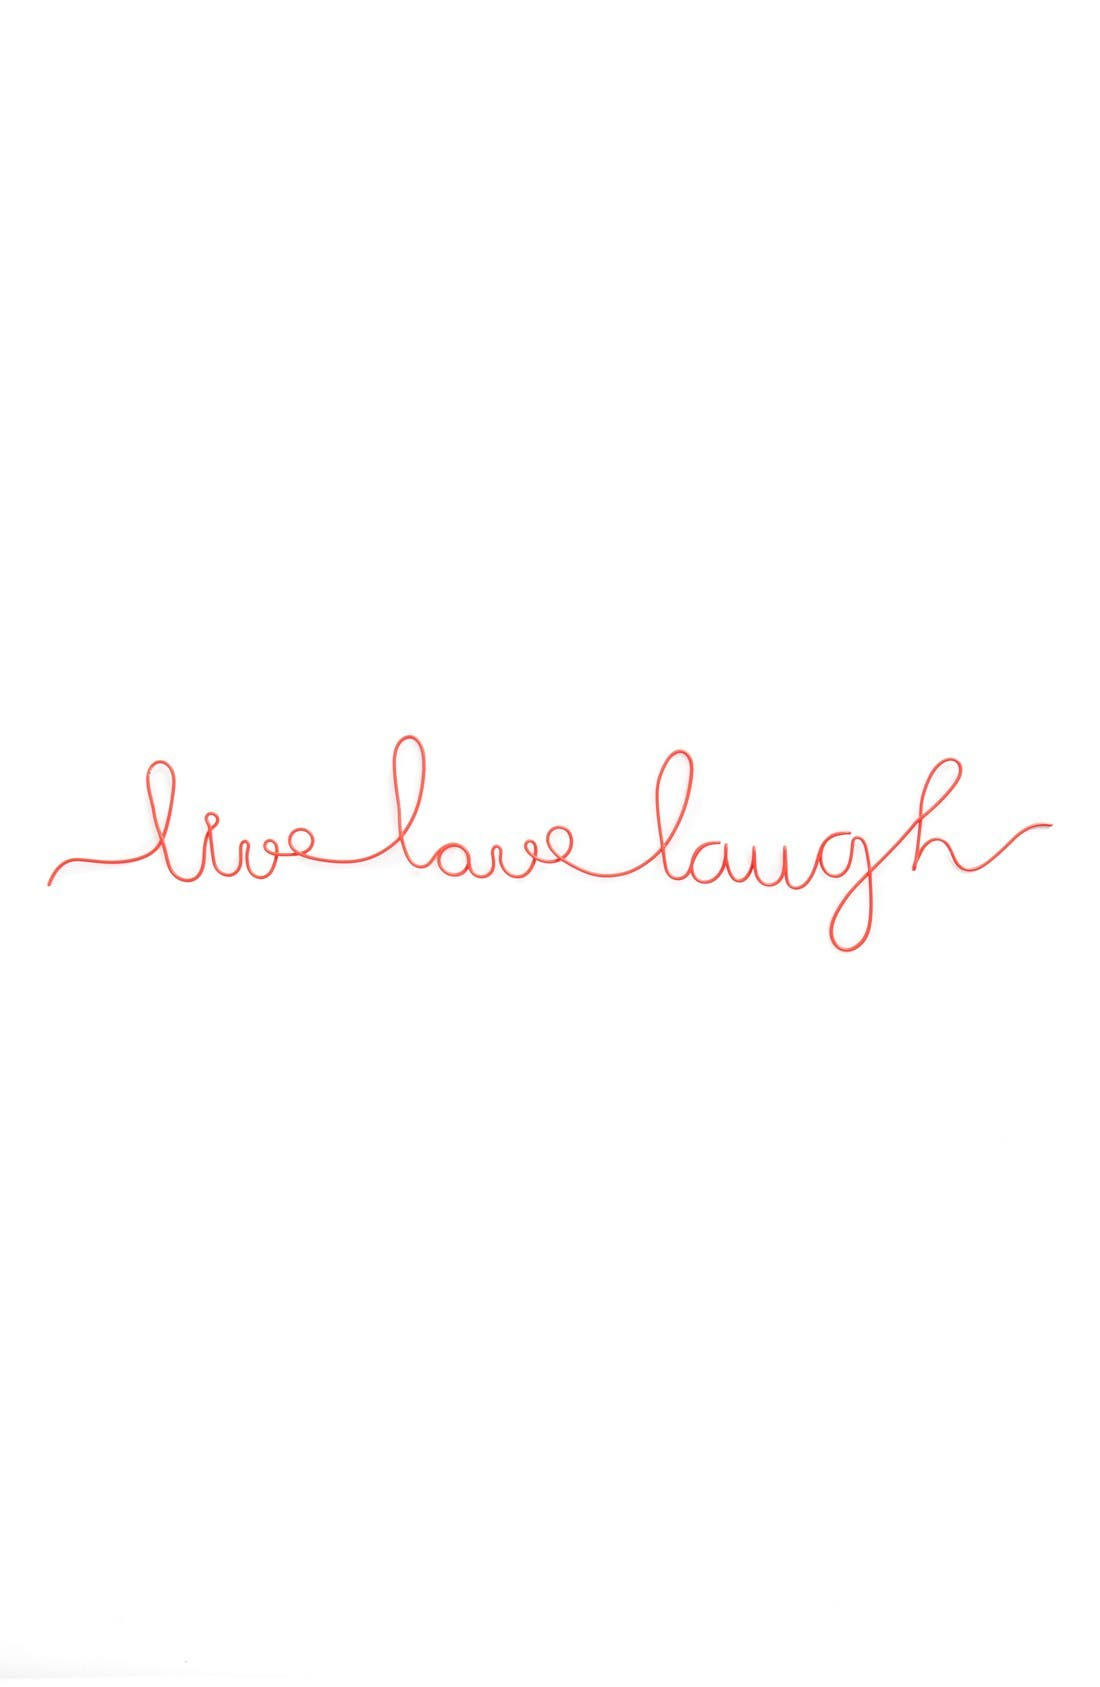 Alternate Image 1 Selected - Natural Life 'Live Love Laugh' Wire Wall Art